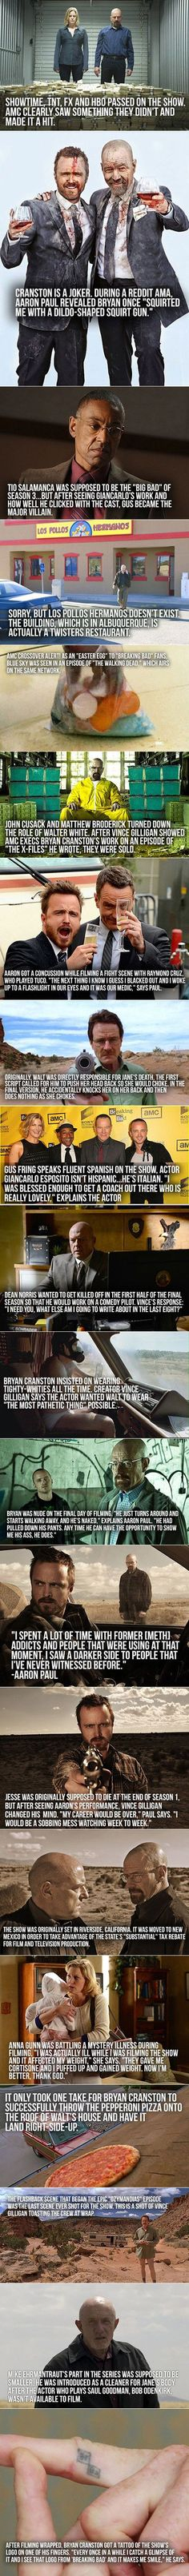 Breaking Bad facts - http://geekstumbles.com/funny/lolsnaps/breaking-bad-facts/